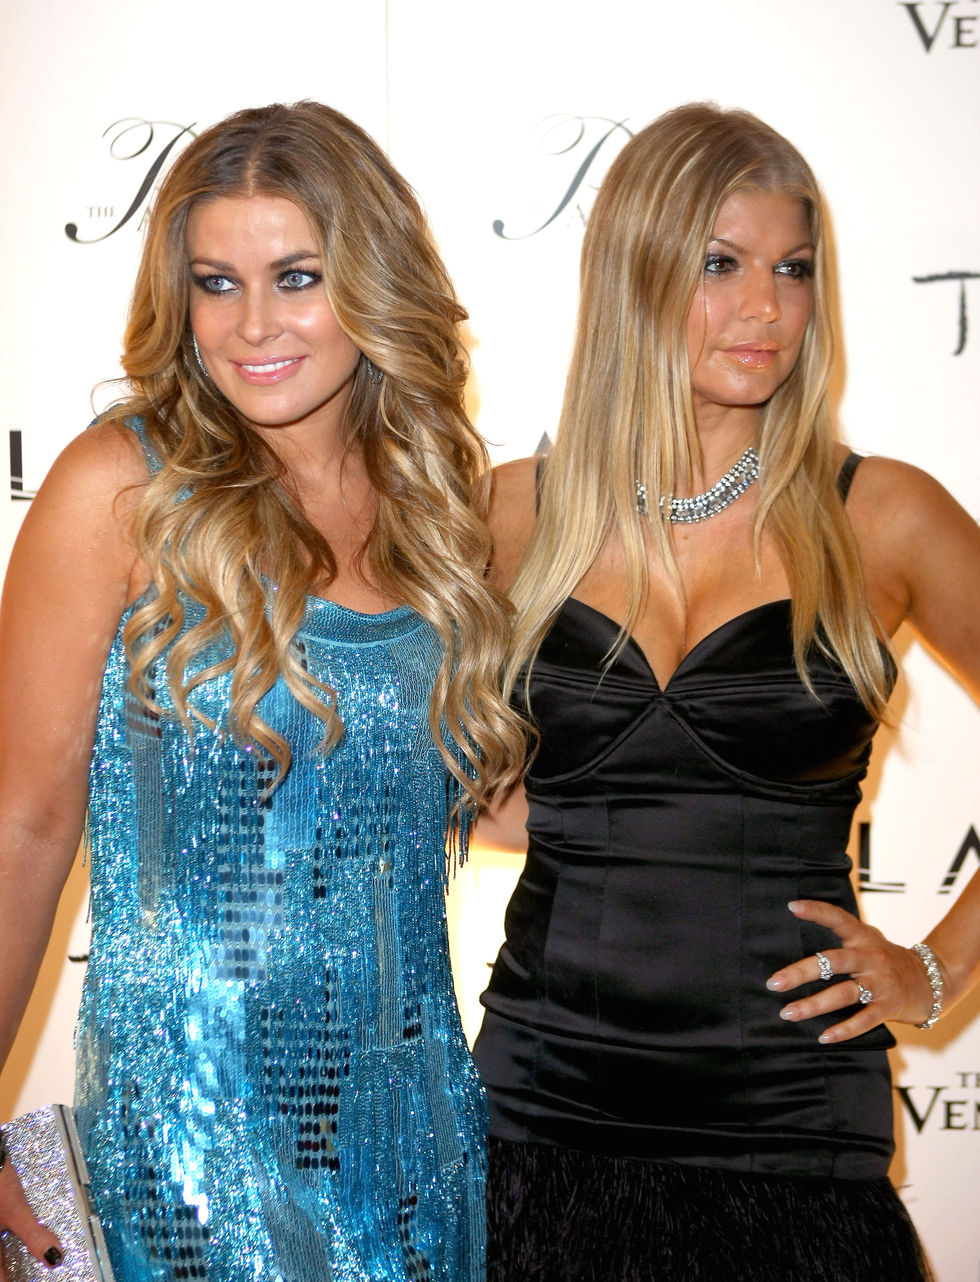 carmen-electra-and-fergie-host-new-years-eve-party-in-las-vegas-04